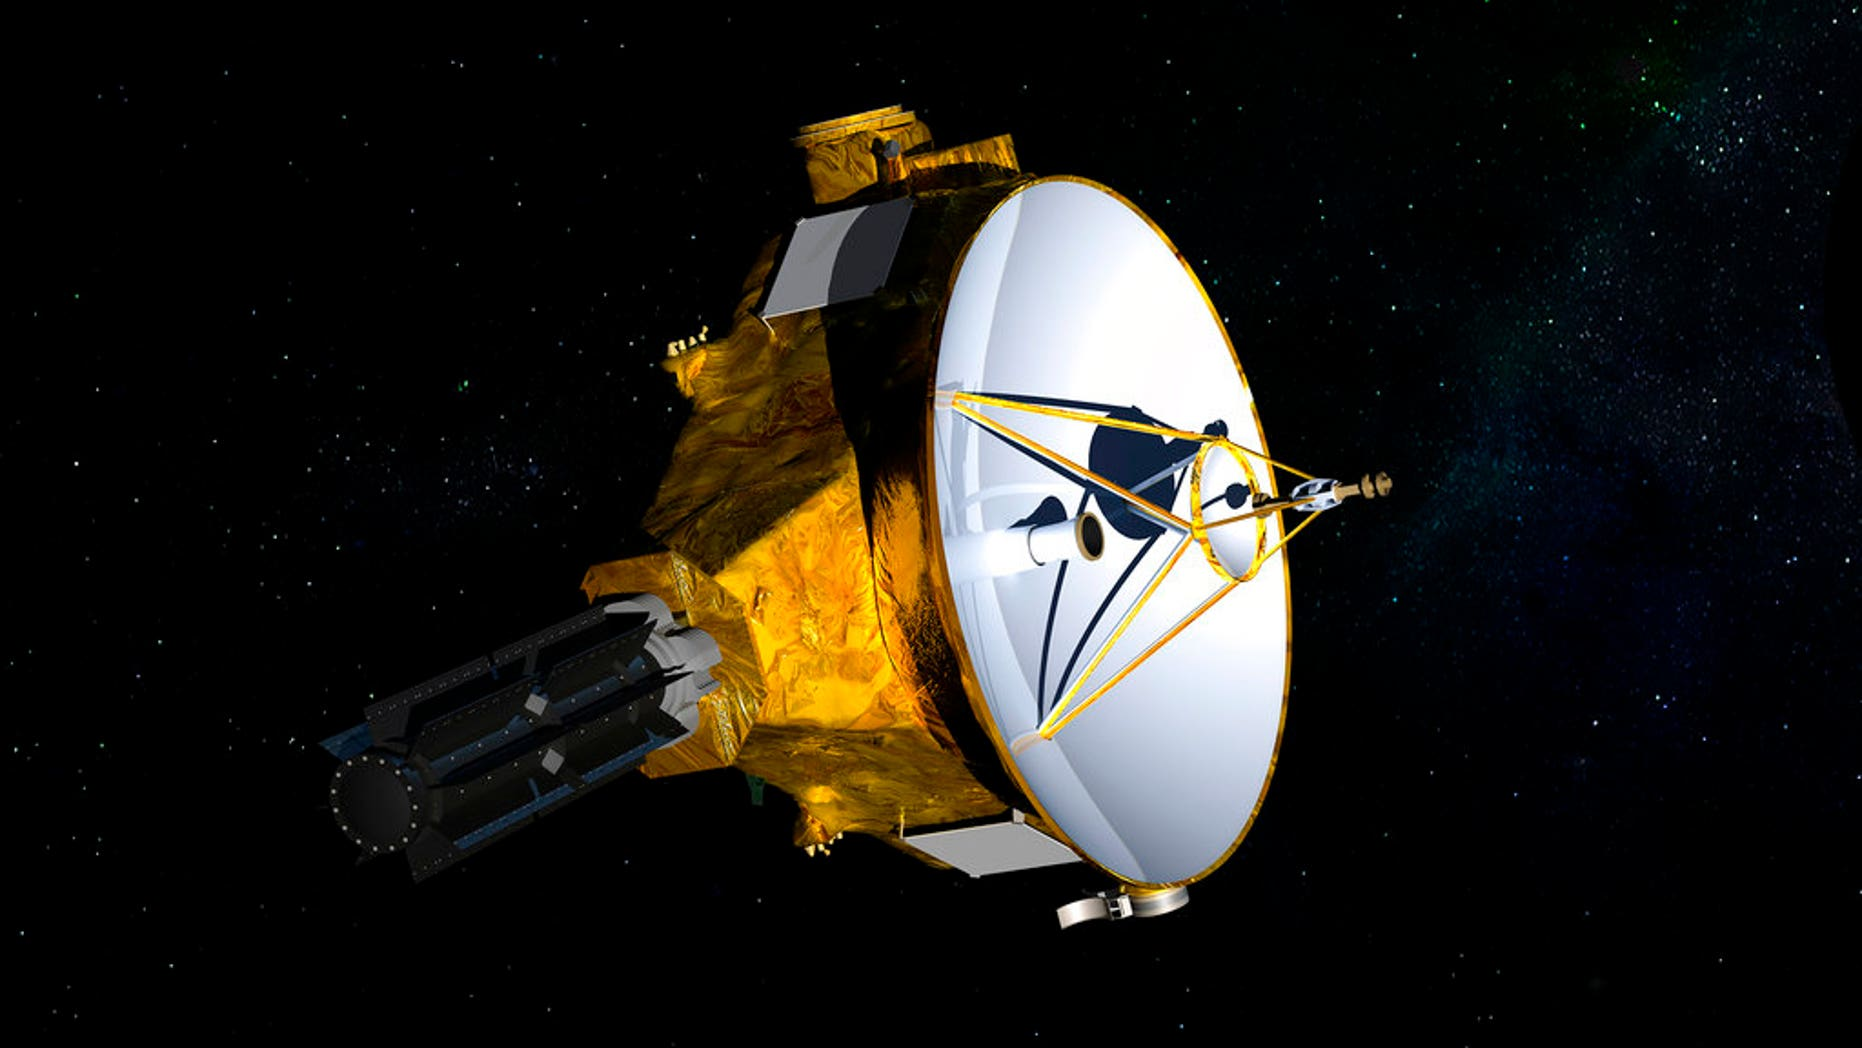 FILE: This illustration provided by NASA shows the New Horizons spacecraft which was launched in 2006. The probe is set to fly past the mysterious object nicknamed Ultima Thule at 12:33 a.m. Tuesday.